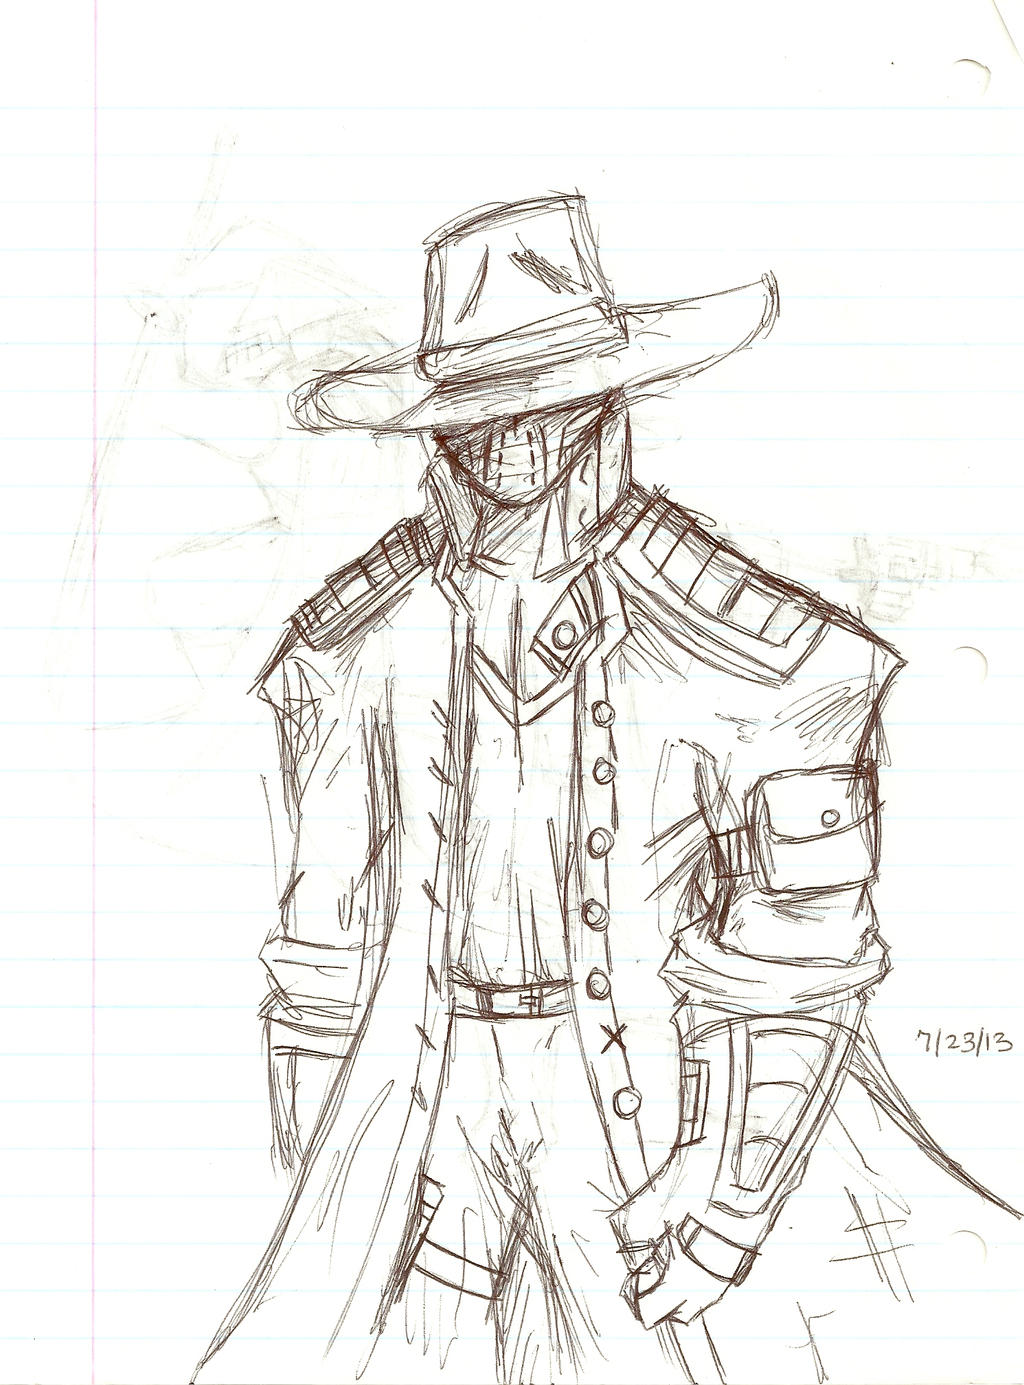 Cowboy sketch drawings - photo#5